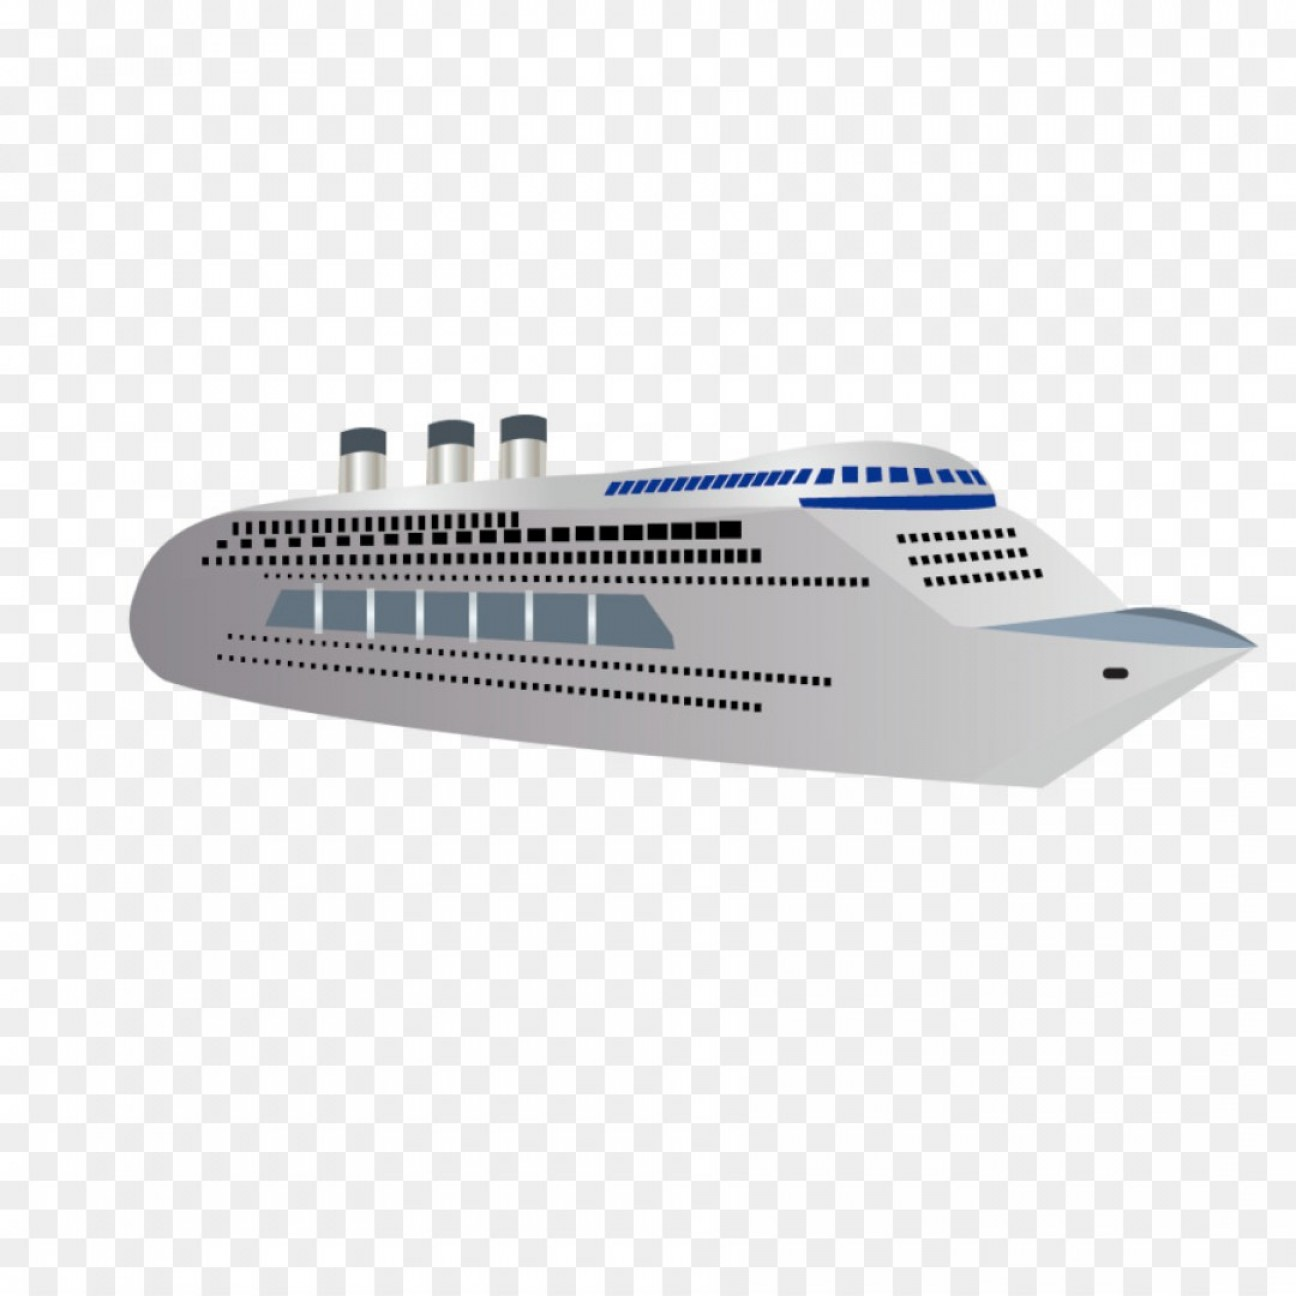 Waves With Cruise Ship Silhouette Vector: Png Cruise Ship Yacht Boat Vector Simple Cruise Yacht